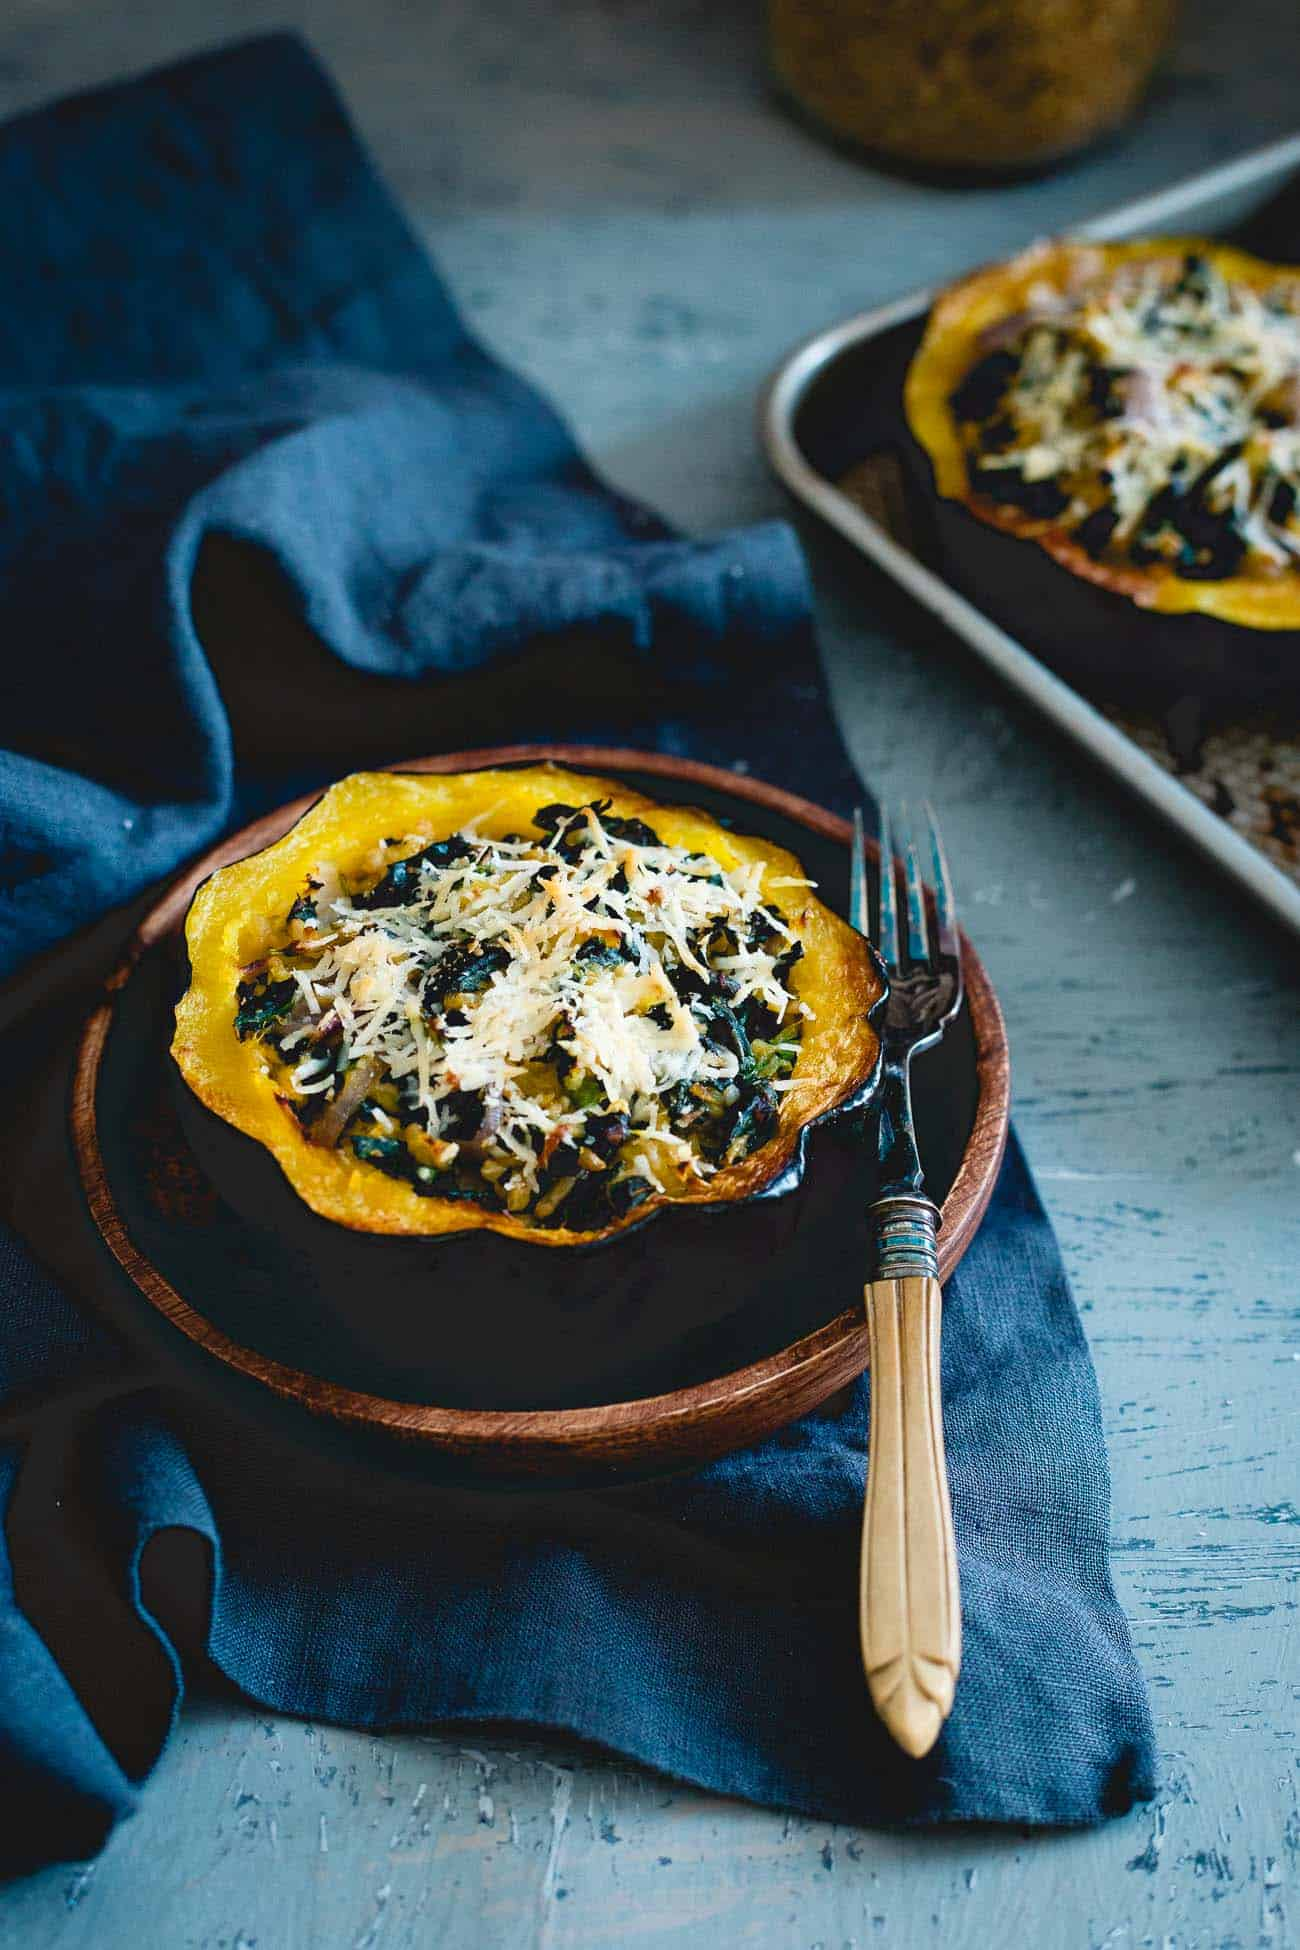 This twice baked acorn squash is stuffed with tuscan kale, hearty freekah and pecorino romano for a lovely fall side with a hidden protein boost.